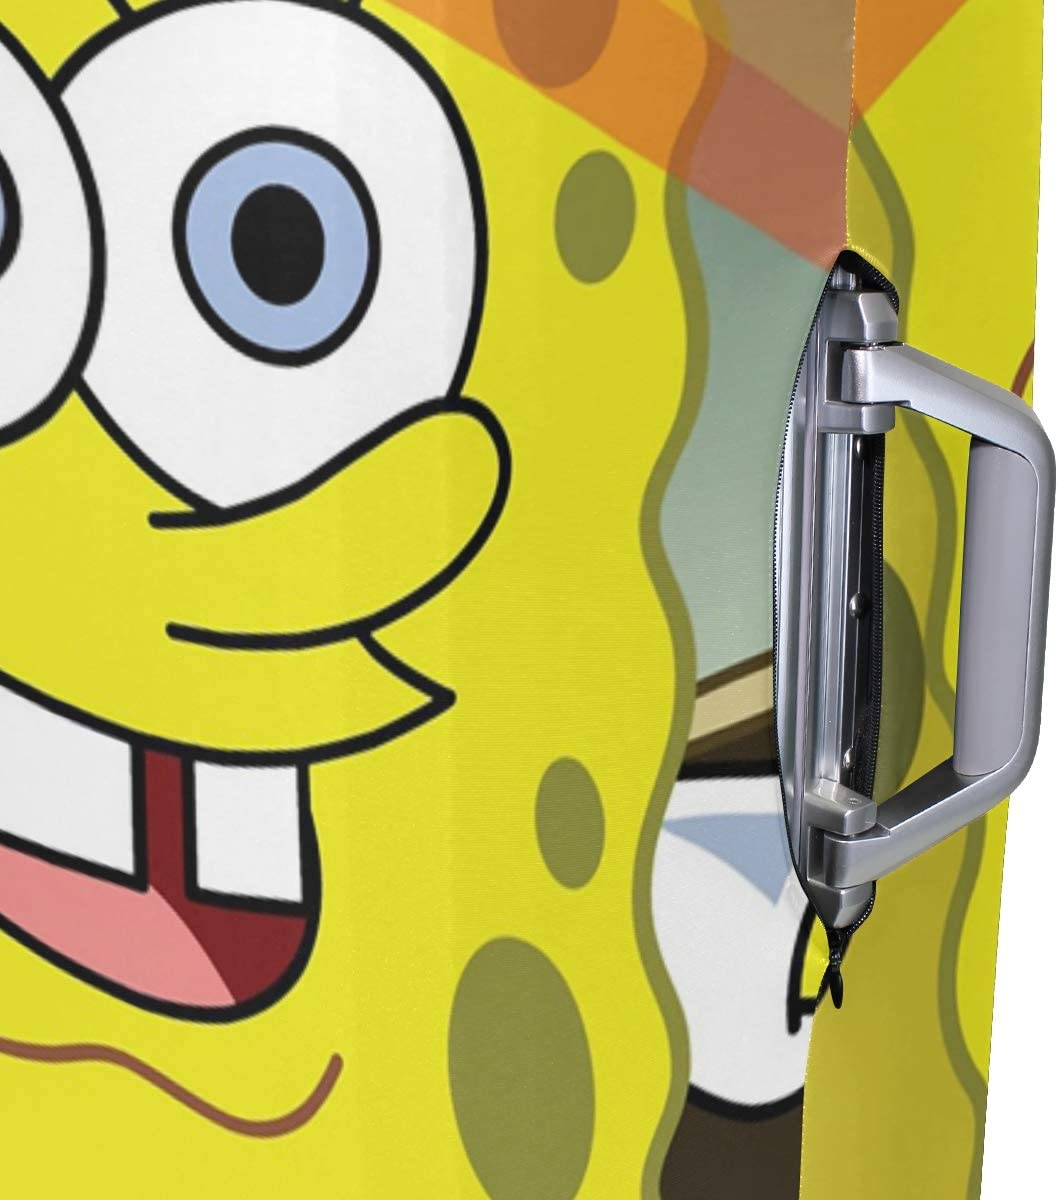 Spongebob Squarepants Travel Luggage Cover Suitcase Protector Fits 26-28 Inch Washable Baggage Covers